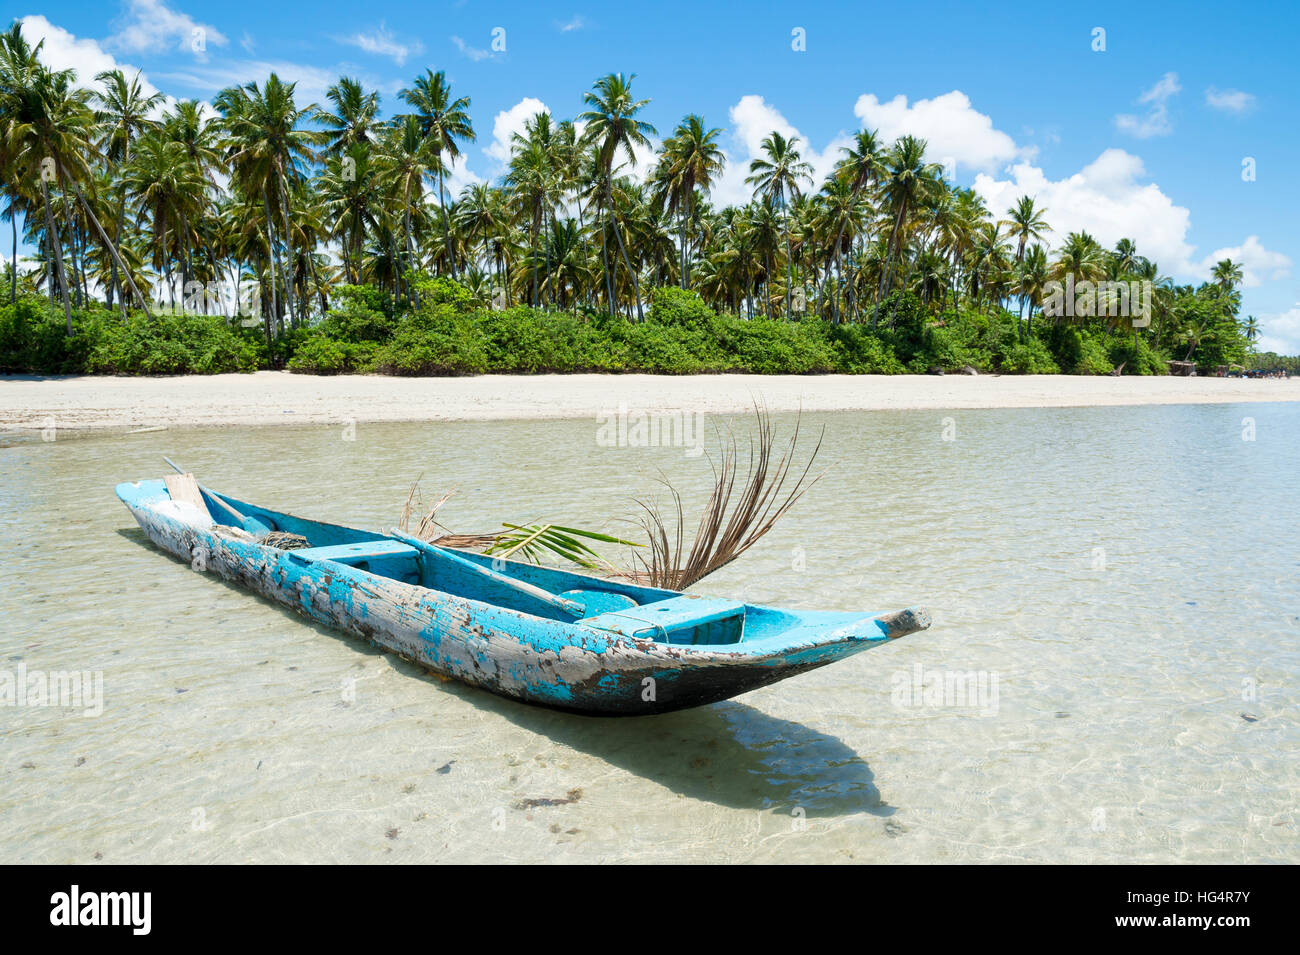 Weathered dugout canoe on remote beach in Bahia, Brazil - Stock Image